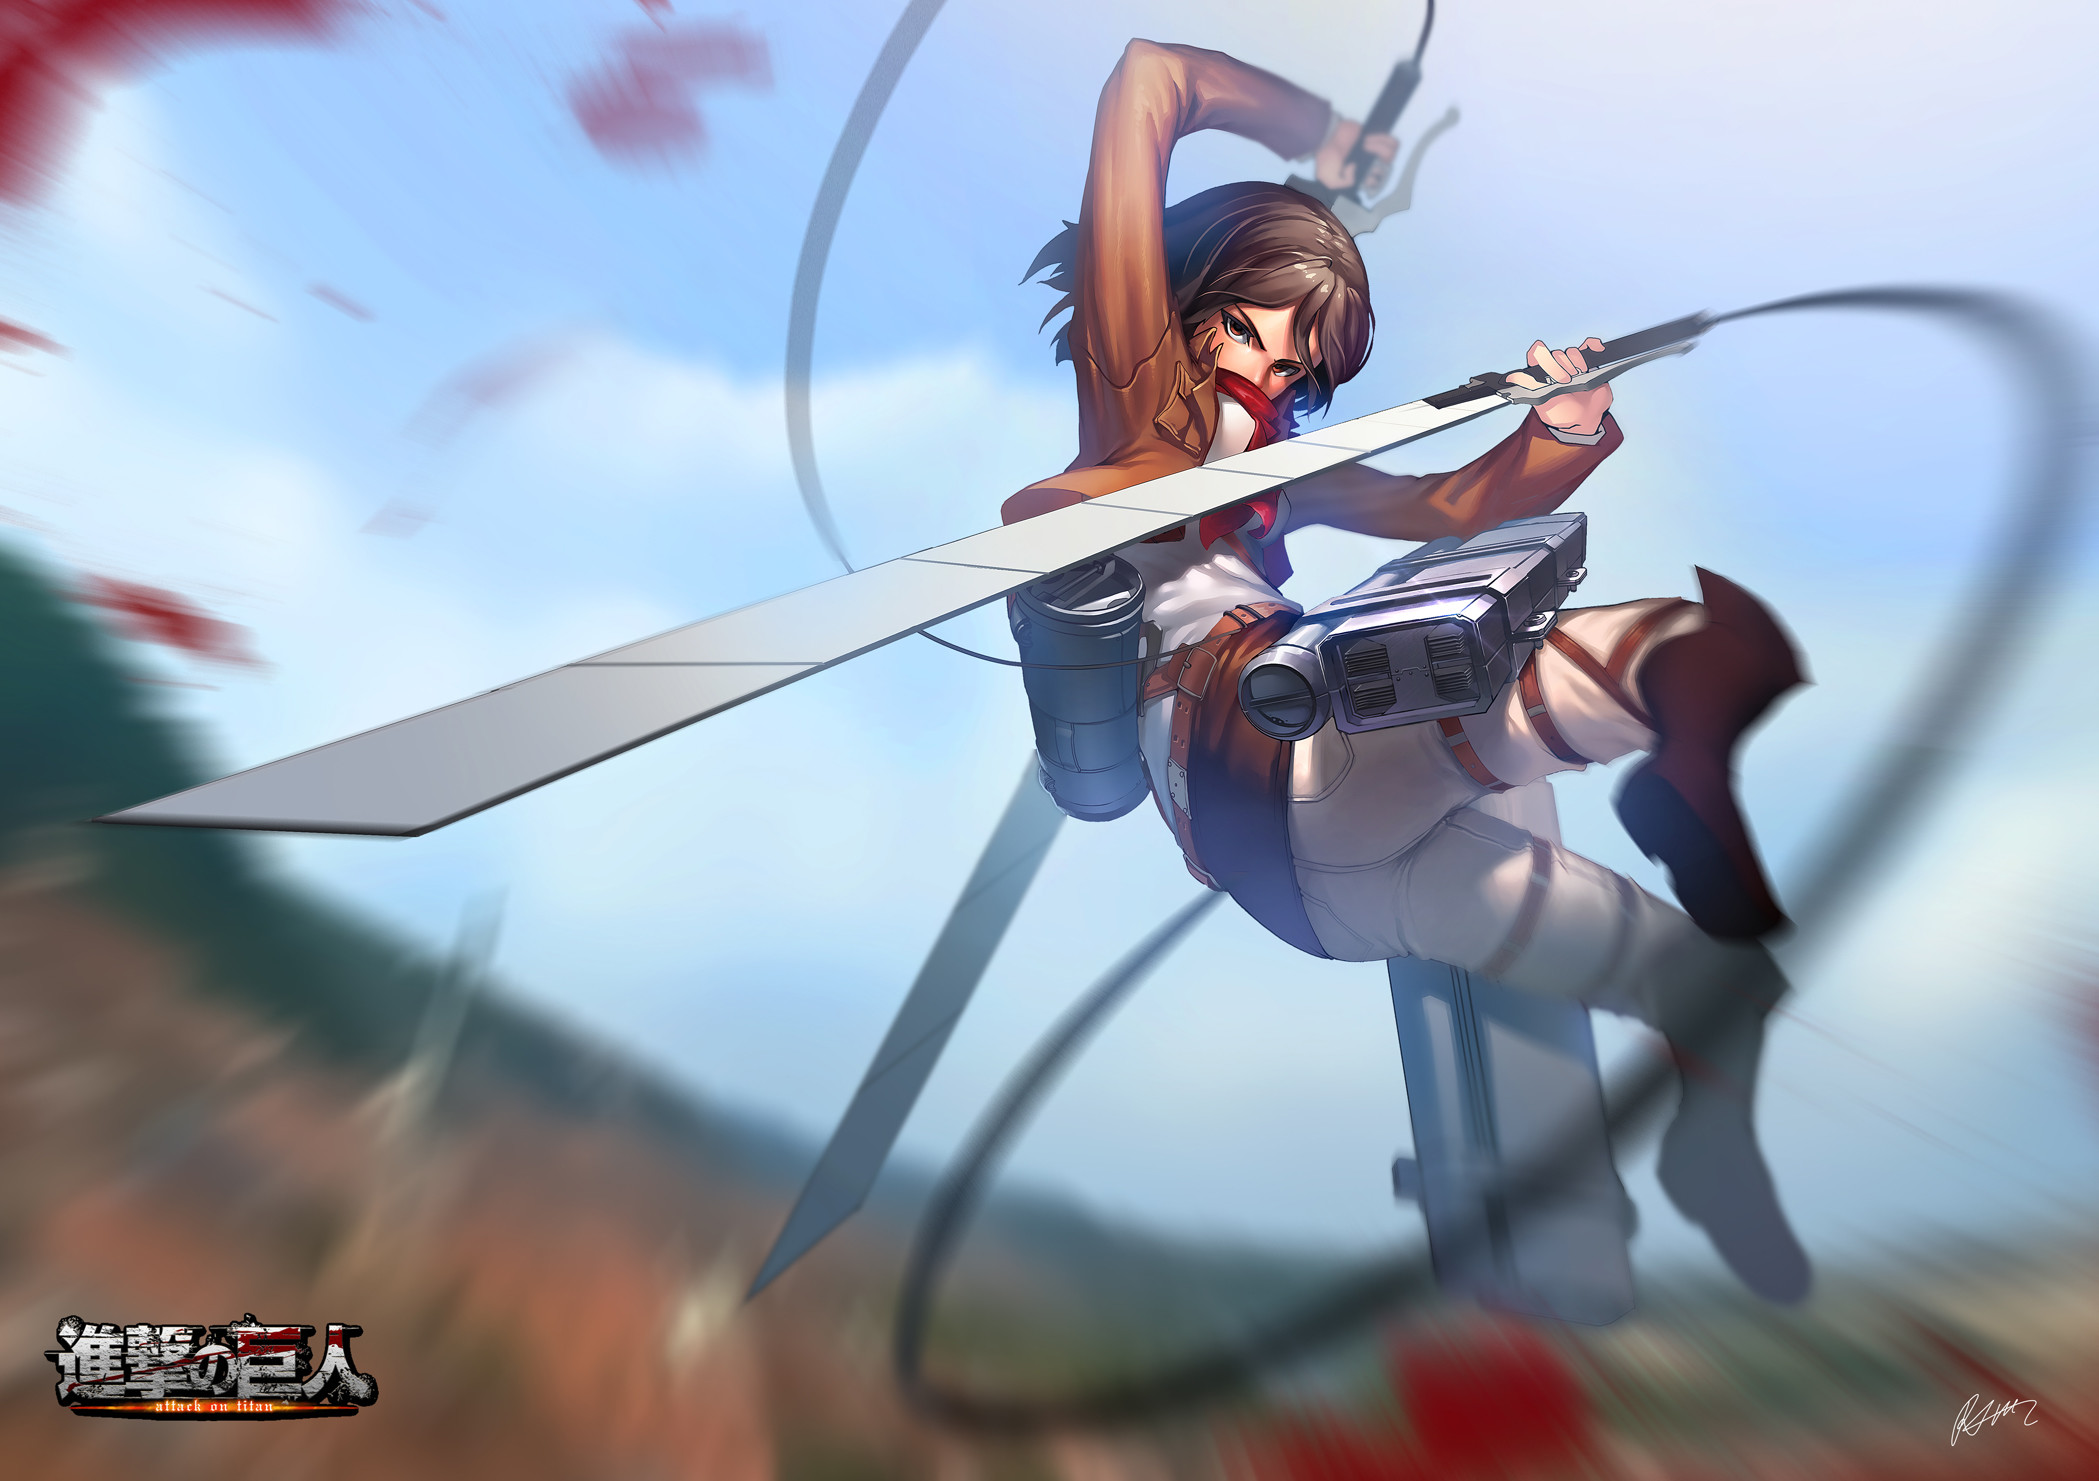 2099x1481 Mikasa Ackerman - Shingeki no Kyojin / Attack on Titan,Anime